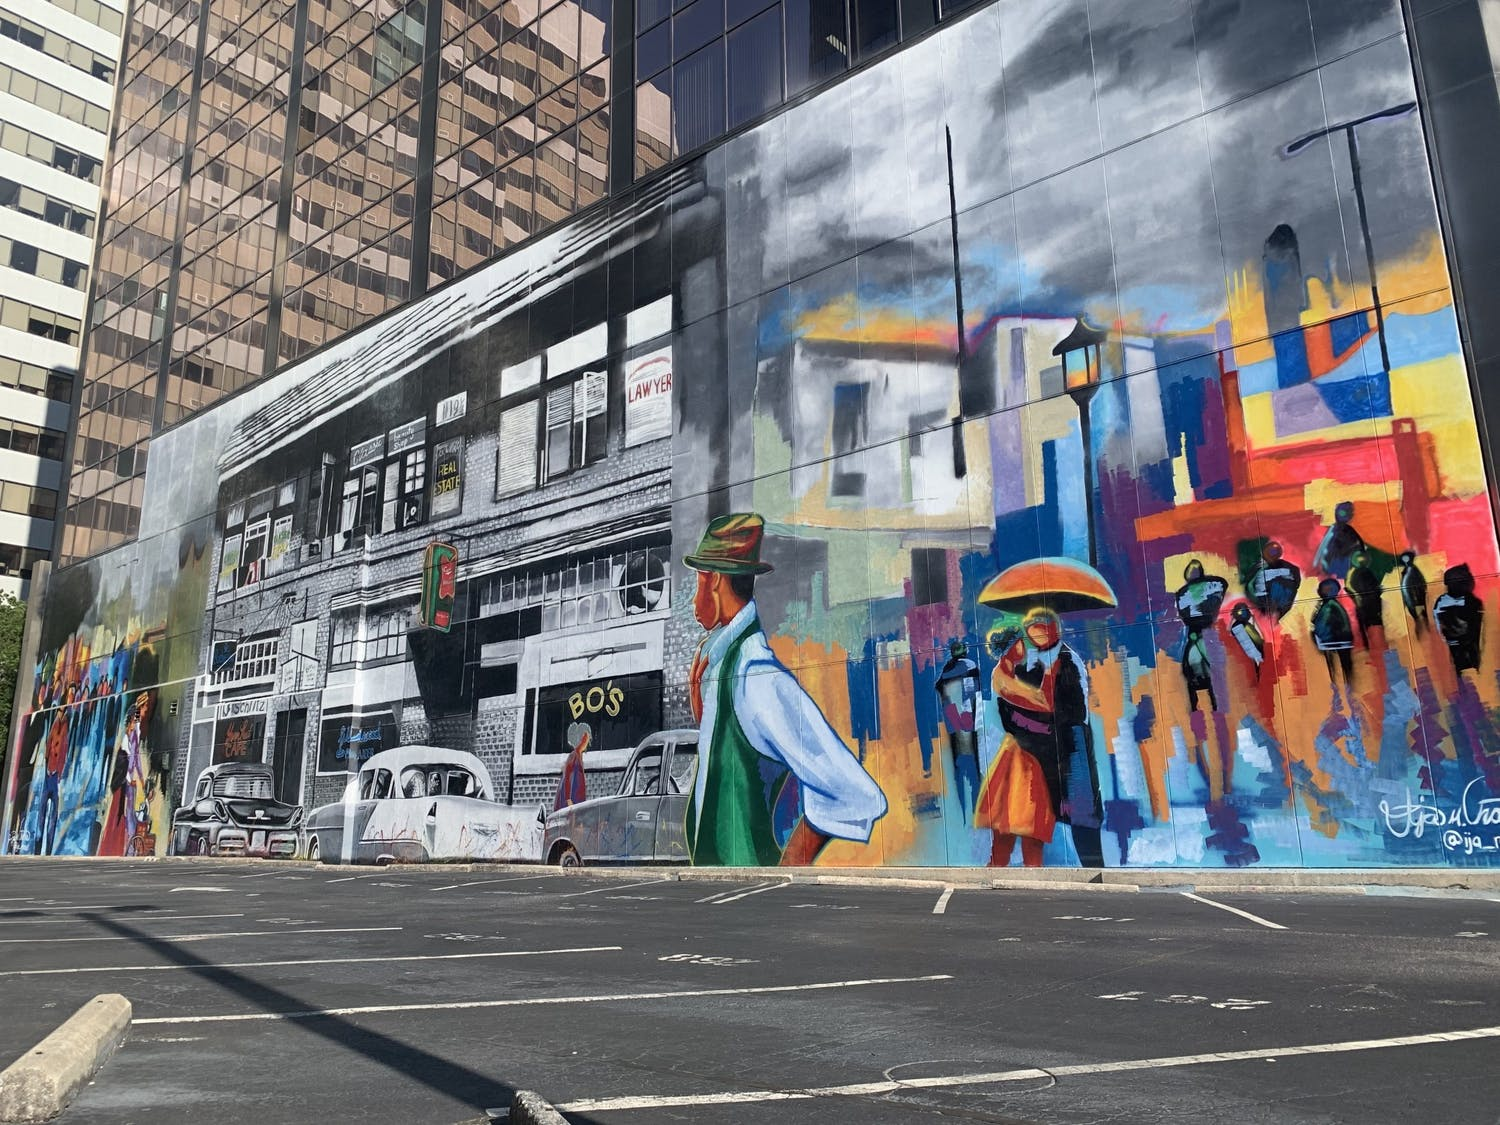 A mural depicting Black Wall Street on the side of the City of Columbia building. The artist, Ija Charles, is a 24-year-old self-starter from Columbia and Louisiana.